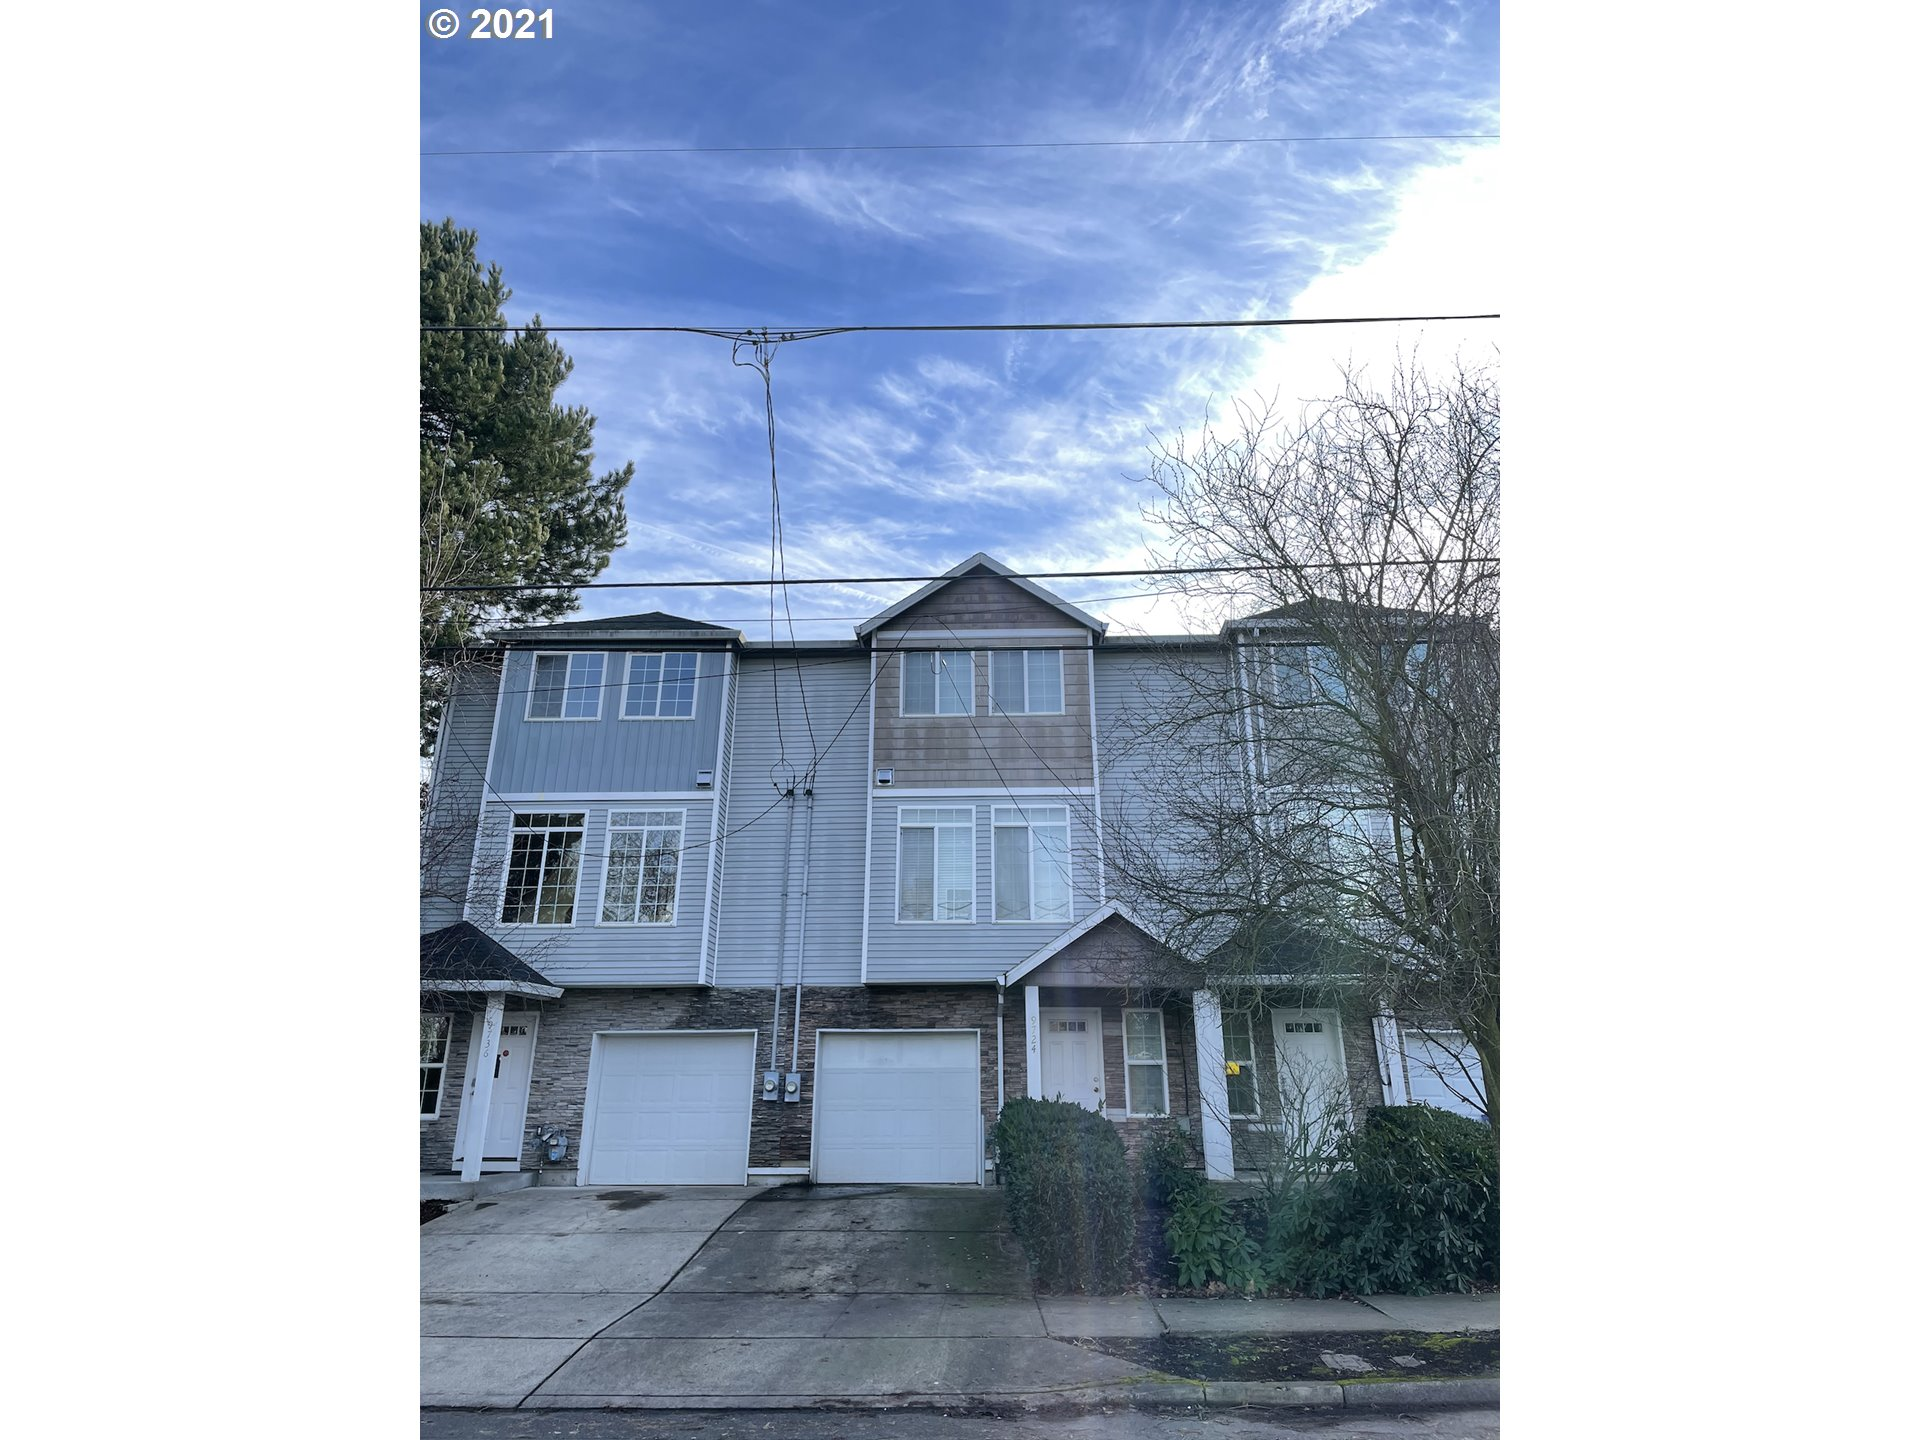 9724 N FAIRHAVEN AVE, Portland OR 97203